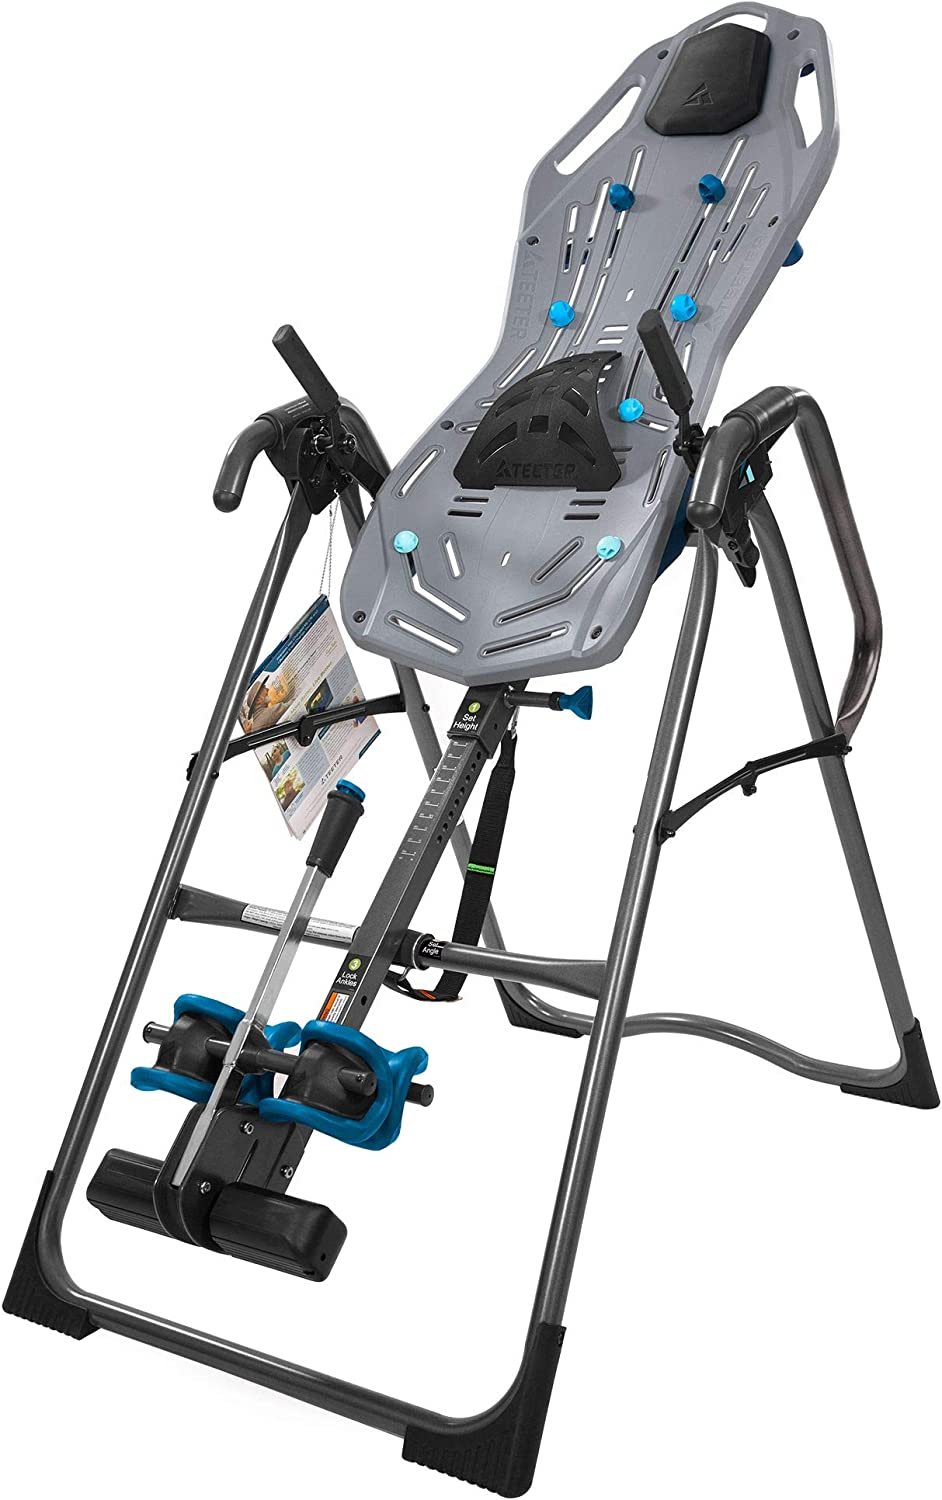 Teeter FitSpine X3 Inversion Table with Deluxe Easy-to-Reach Ankle Lock